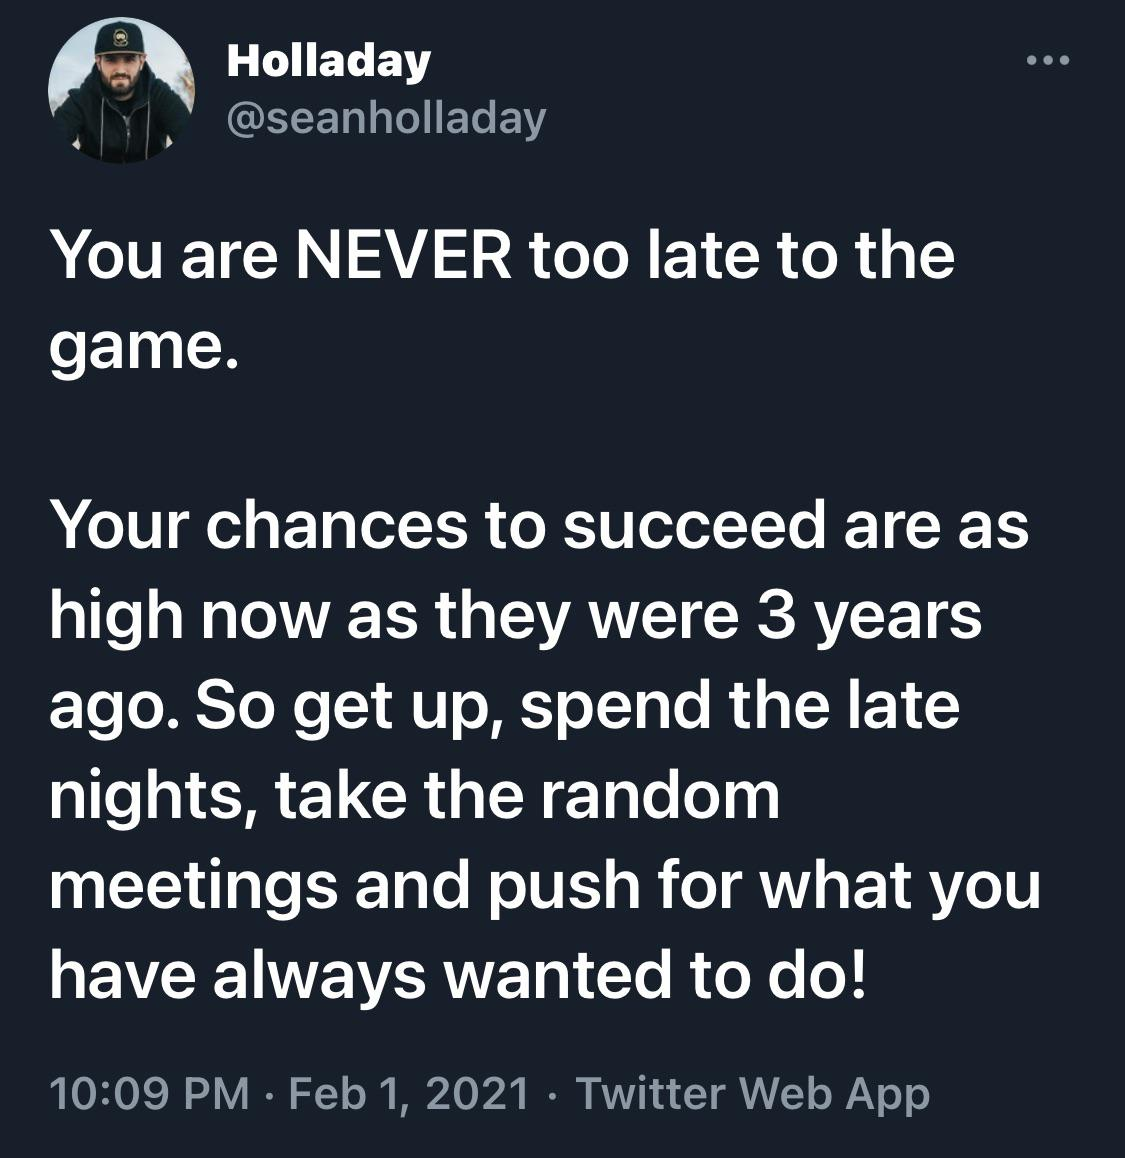 [Image] It's never too late!